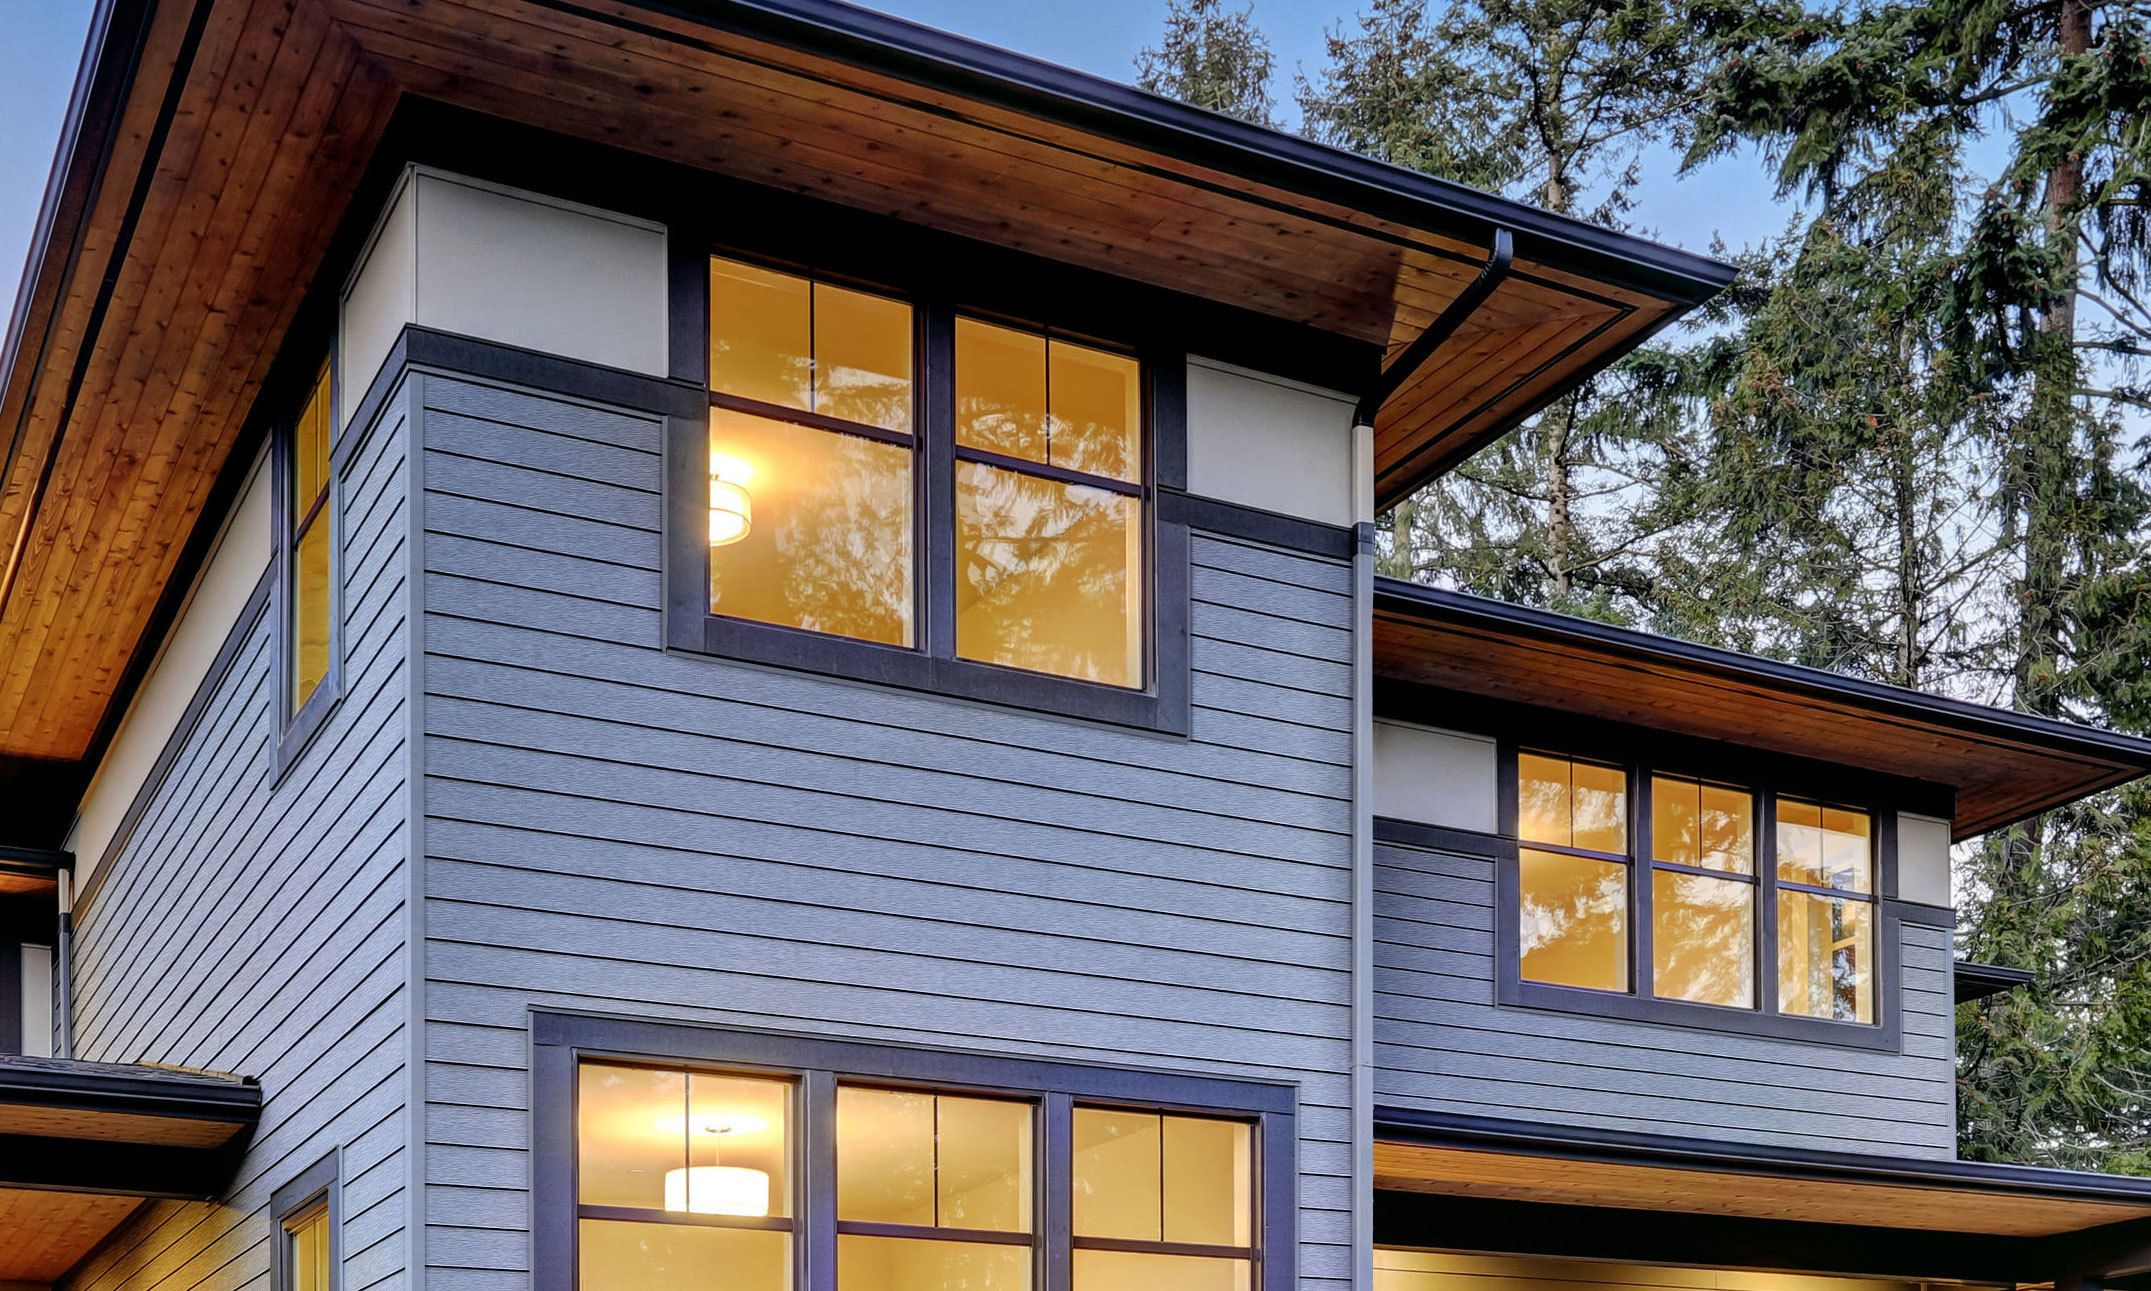 Siding Options For Denver Homes And Businesses With Images Steel Siding Siding Options Vinyl Siding Installation